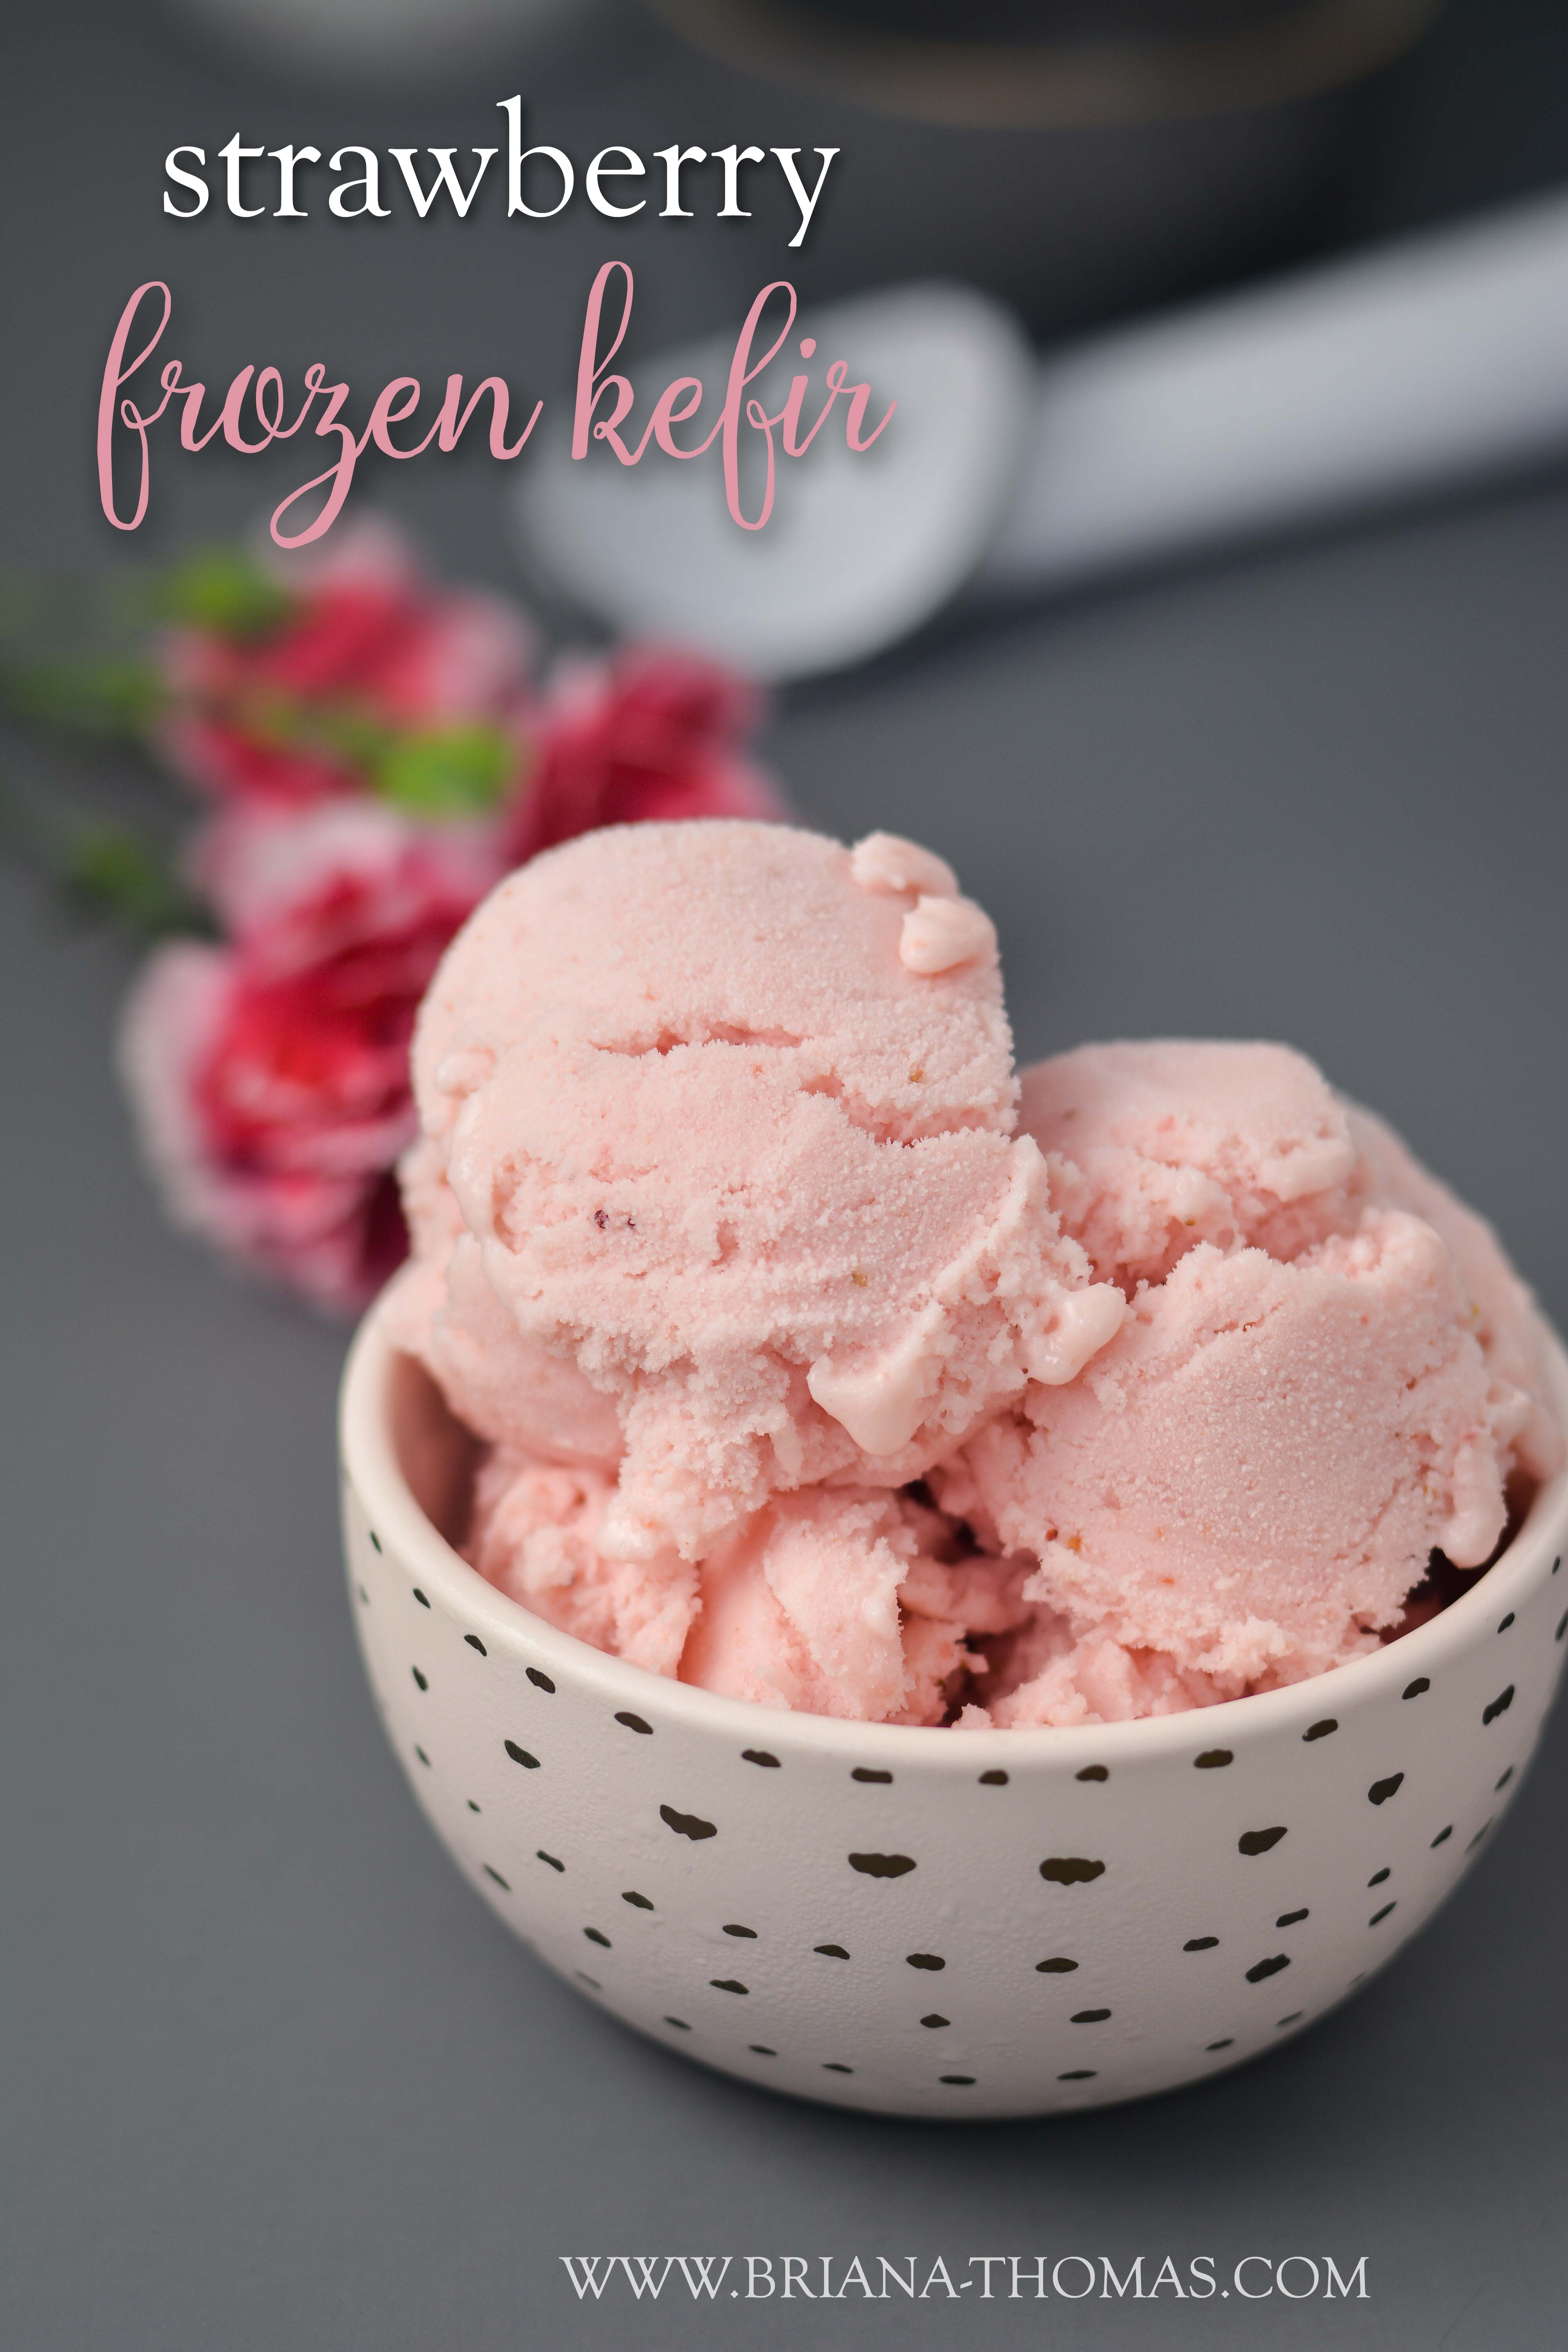 This Strawberry Frozen Kefir is so refreshing! Think ice cream with benefits! It can fit into a THM S, E, or Fuel Pull category depending what type of kefir you use. Sugar free, gluten/egg/nut free and possibly lactose free depending what brand of kefir you use! Low carb and low fat possibilities.